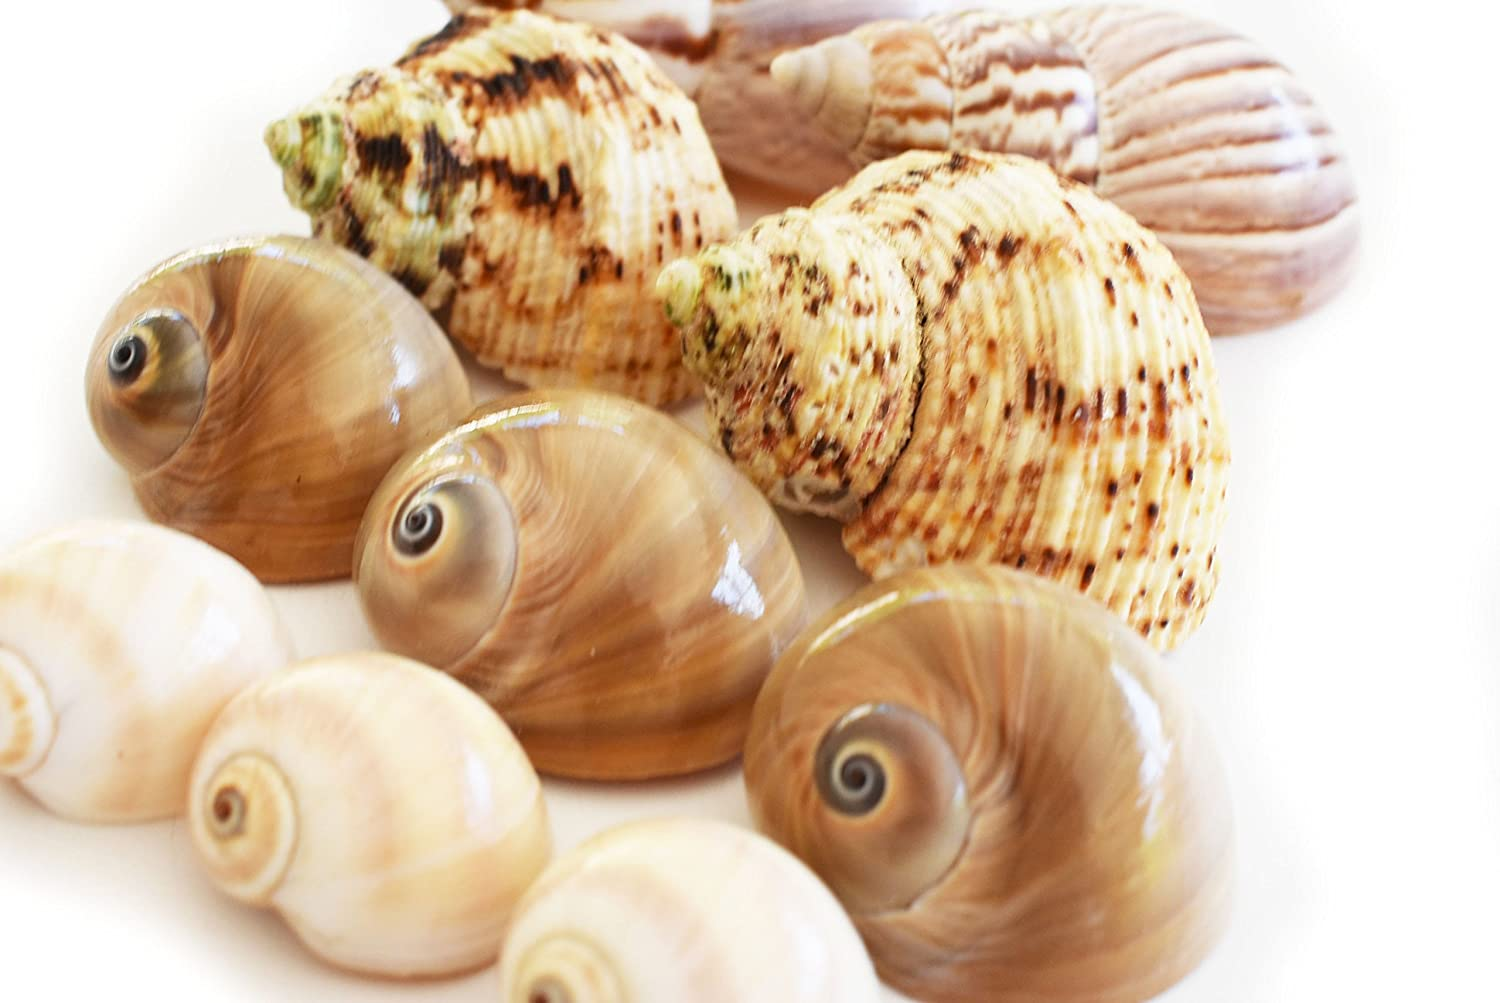 Florida Shells and Gifts 10 Shell Hermit Crab Changing Set - Medium Size (3/4-1 1/4 opening) - Land Snails, Whales Eyes, Moon Shells, Turbos (total of 10 Seashells)